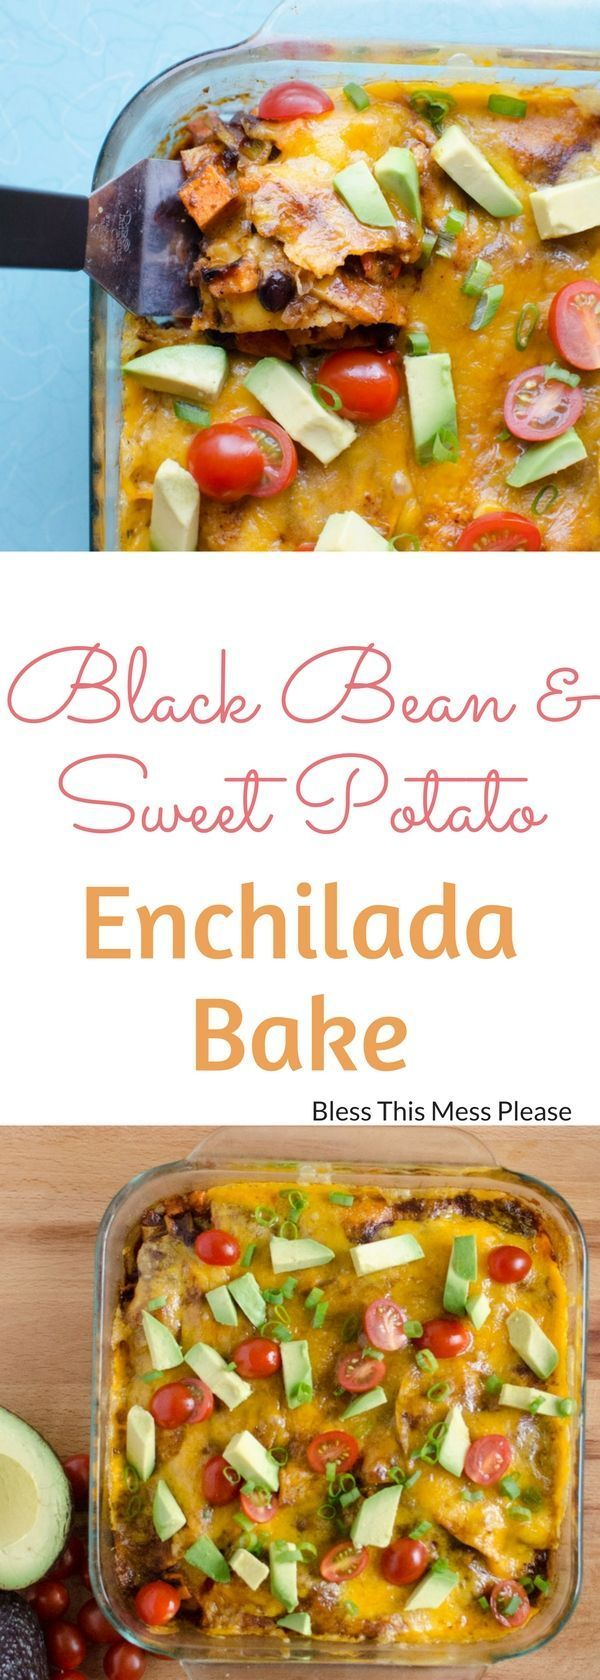 Black Bean and Sweet Potato Enchilada Bake ~ Roasted sweet potatoes, onion, and bell peppers add a smokey flavor to this delicious enchilada bake. Quick, healthy, and gluten free!